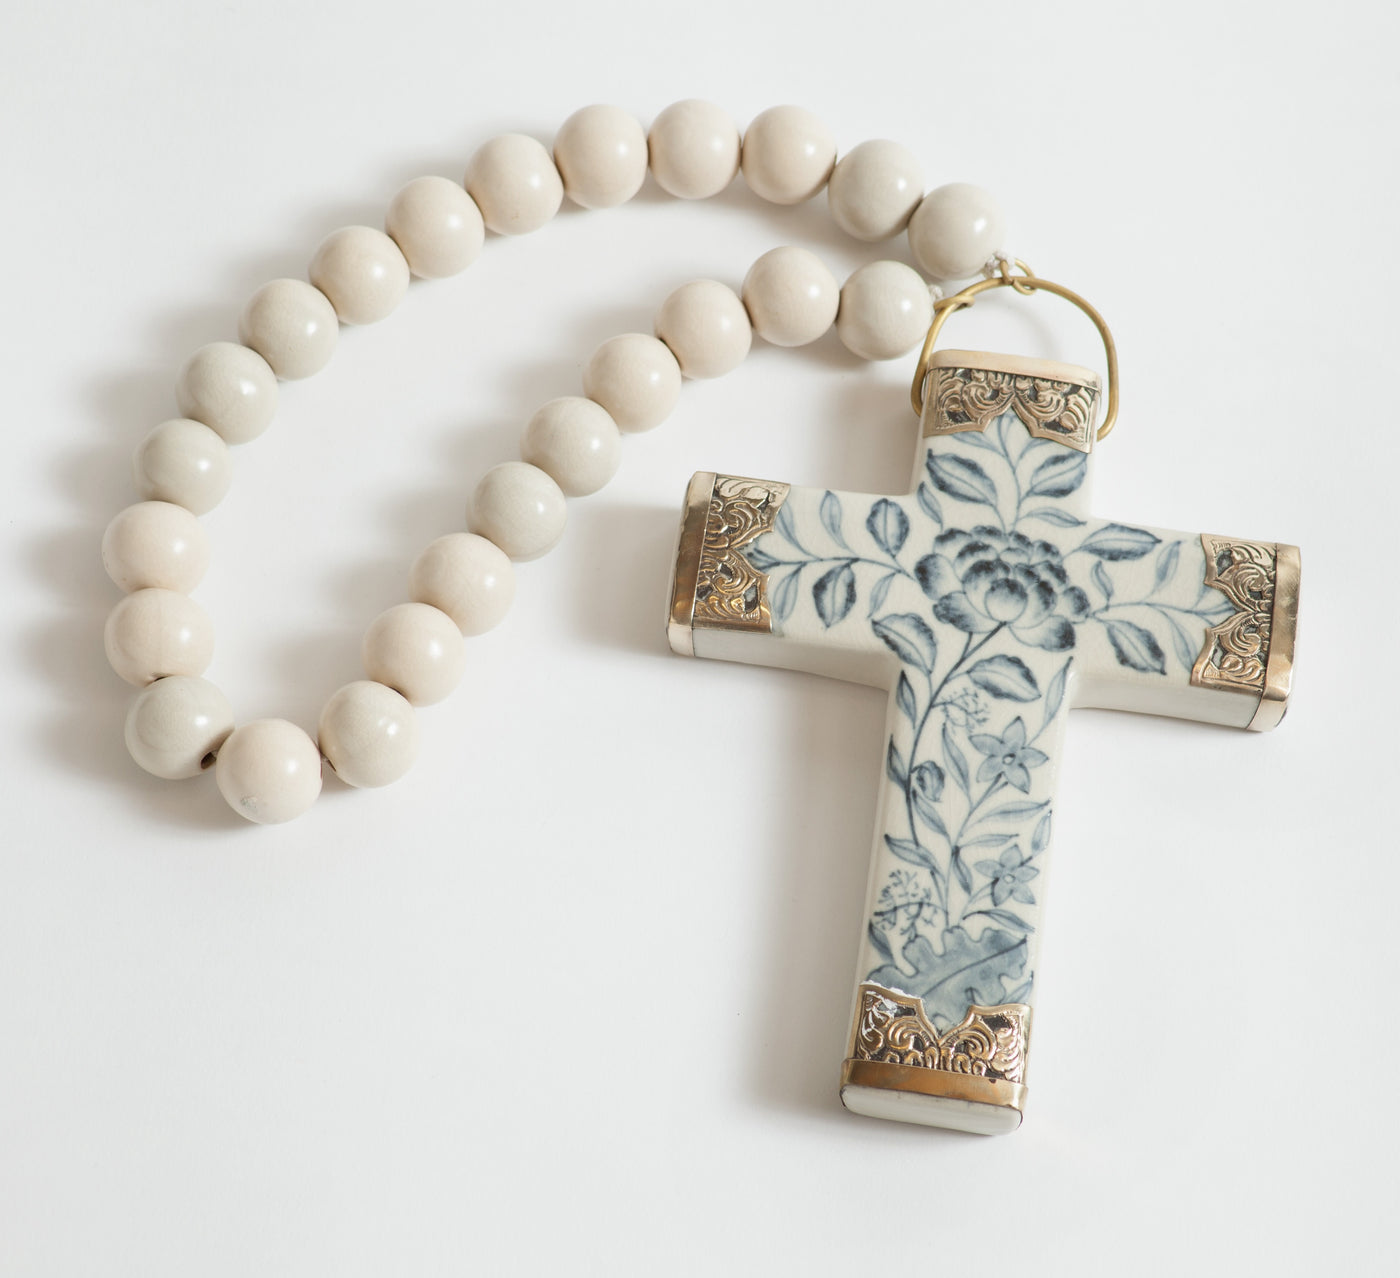 Atlanta Ceramic Cross with Beads